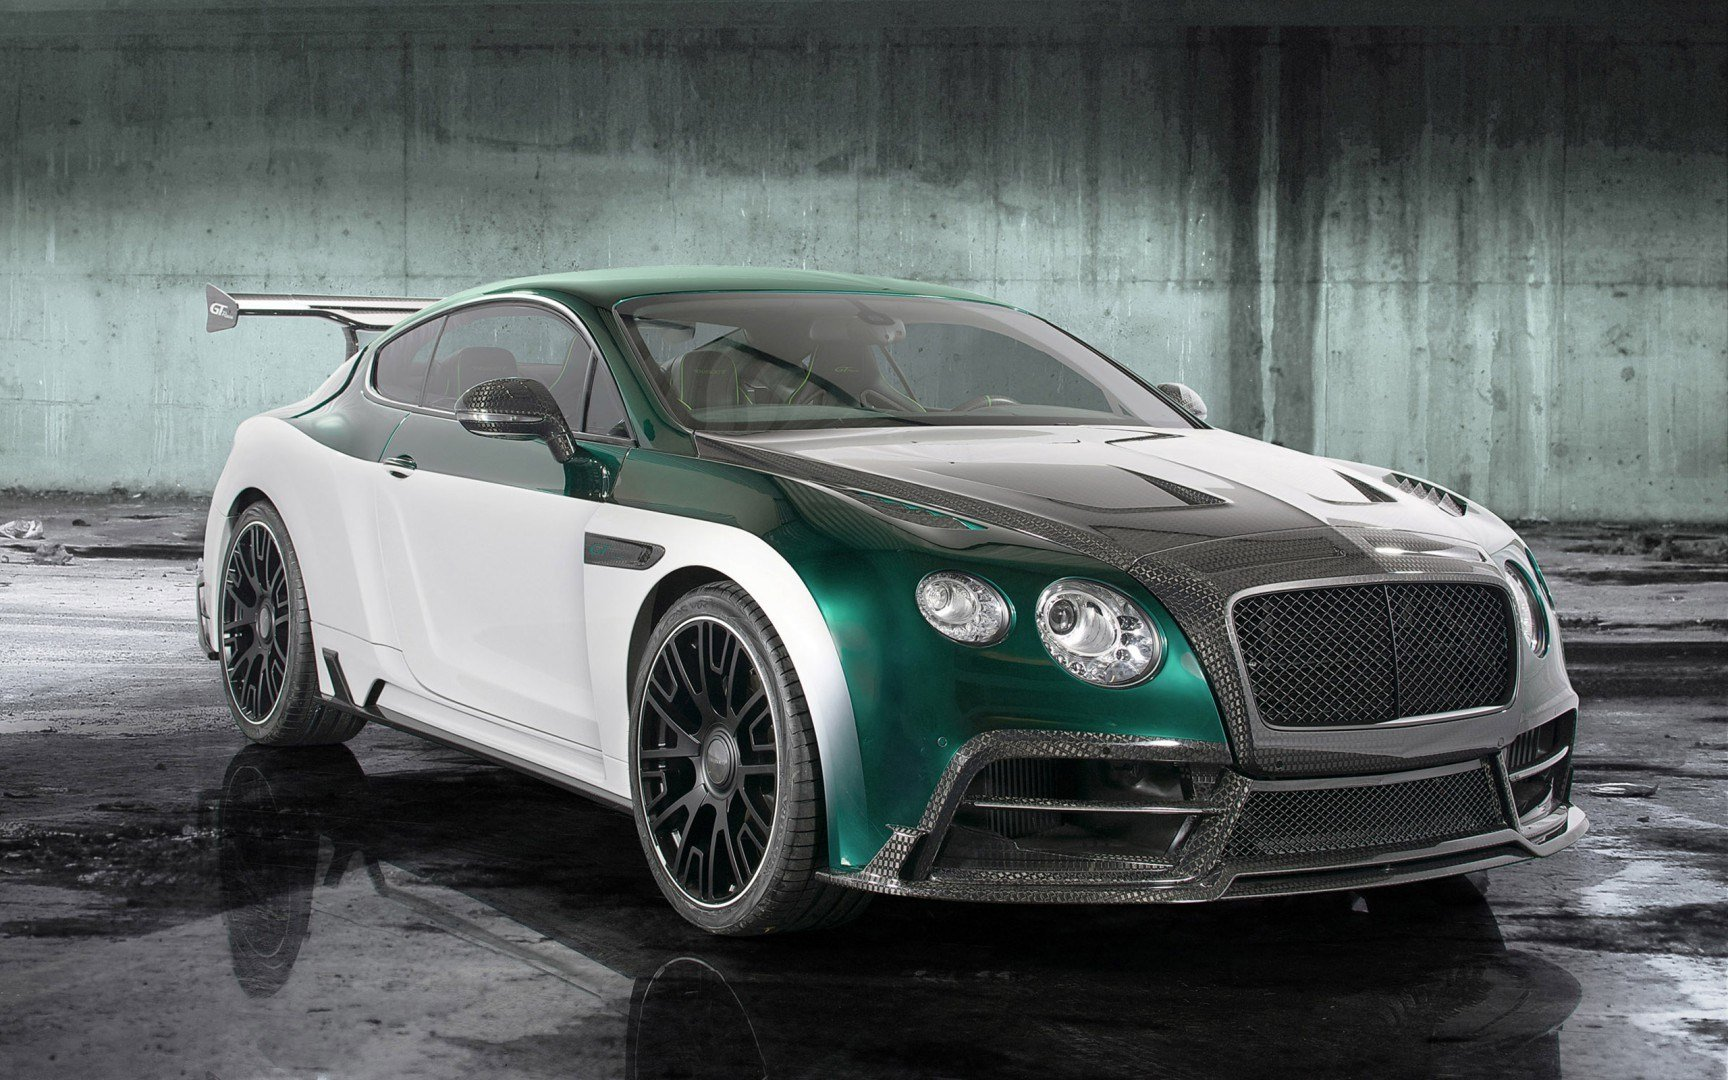 Latest 2015 Mansory Bentley Continental Gt Car Hd Wallpaper Free Download